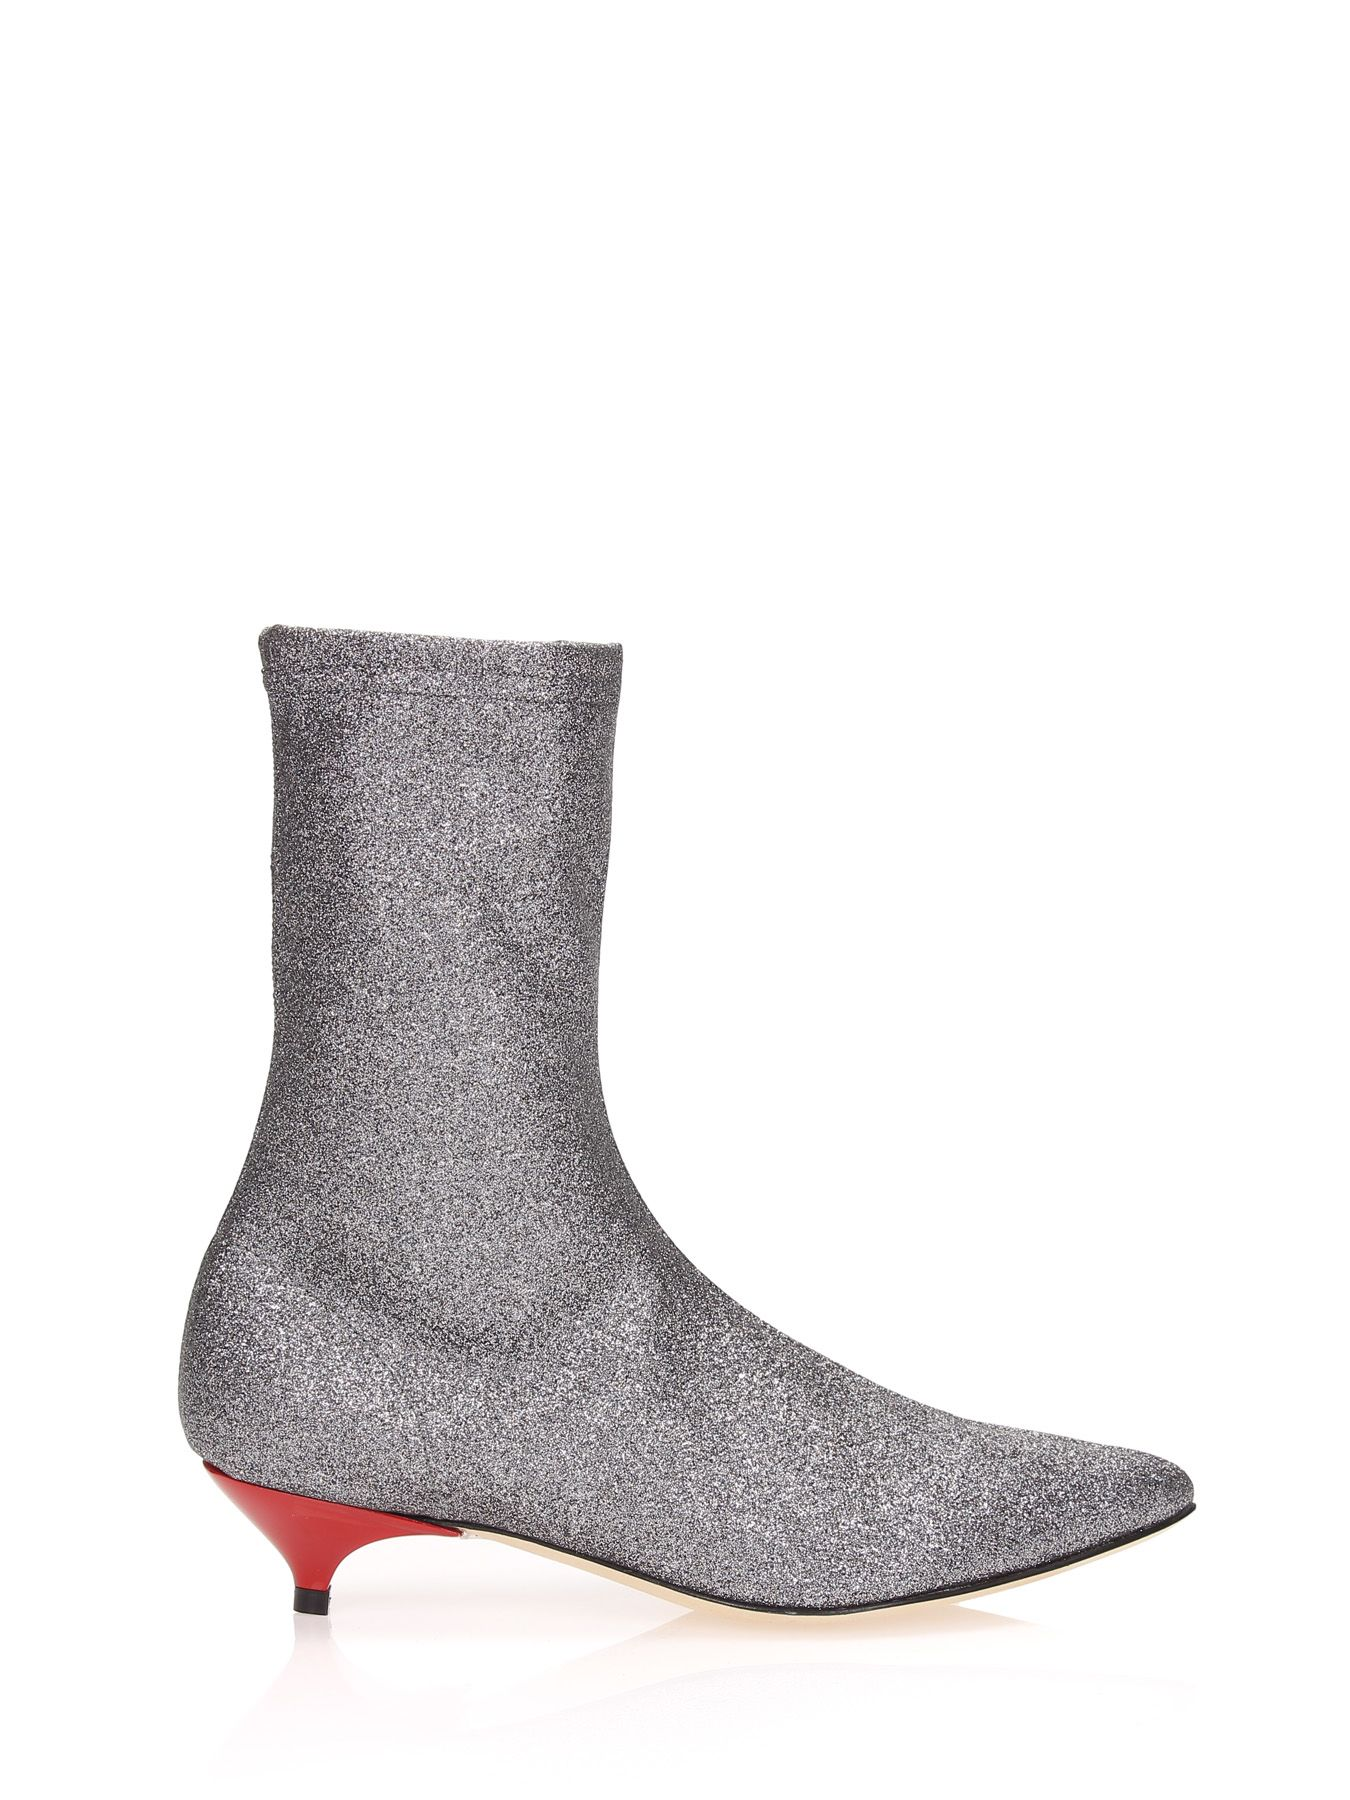 Gia Couture ANKLE BOOTS GIA 39A9